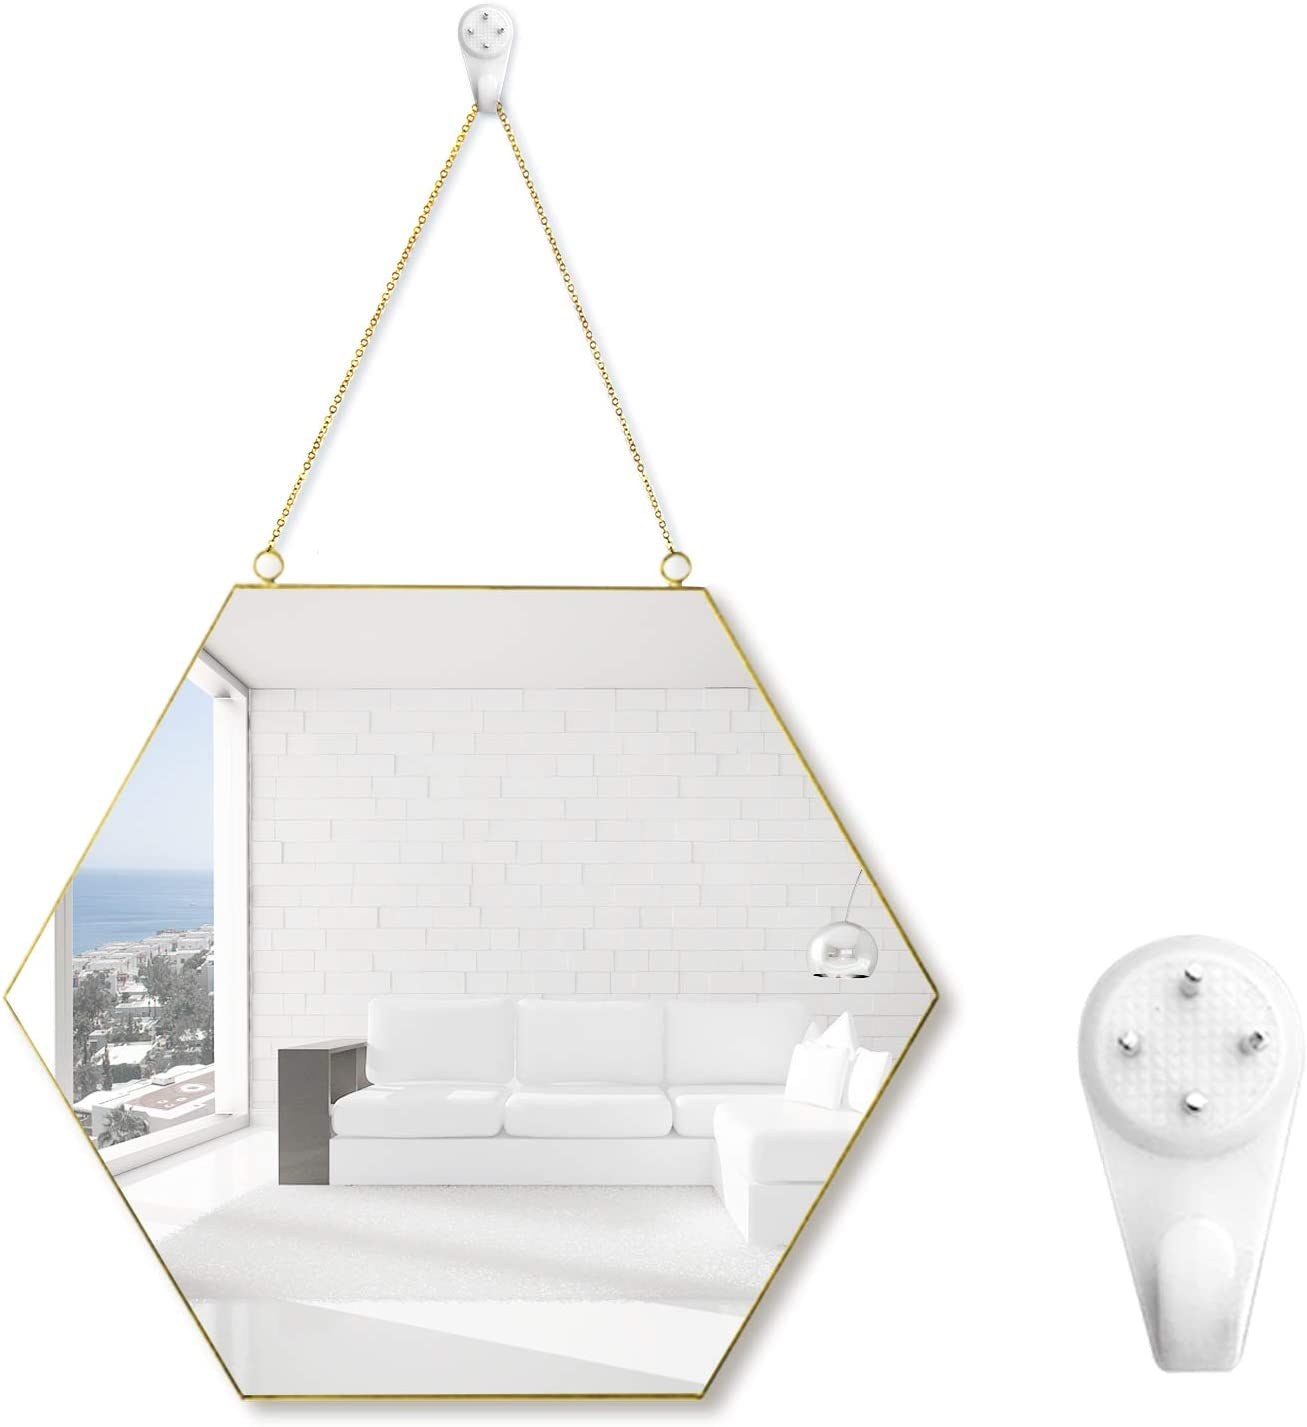 Gold Mirror for Wall Decors Geometric Hexagon Hanging Mirror 11.8 X10.2 inch with Metal Chain & Hook Easy Mounted Metallic Copper Frame Mirror Ideal for Home Décor Bathroom Living Room Bedroom